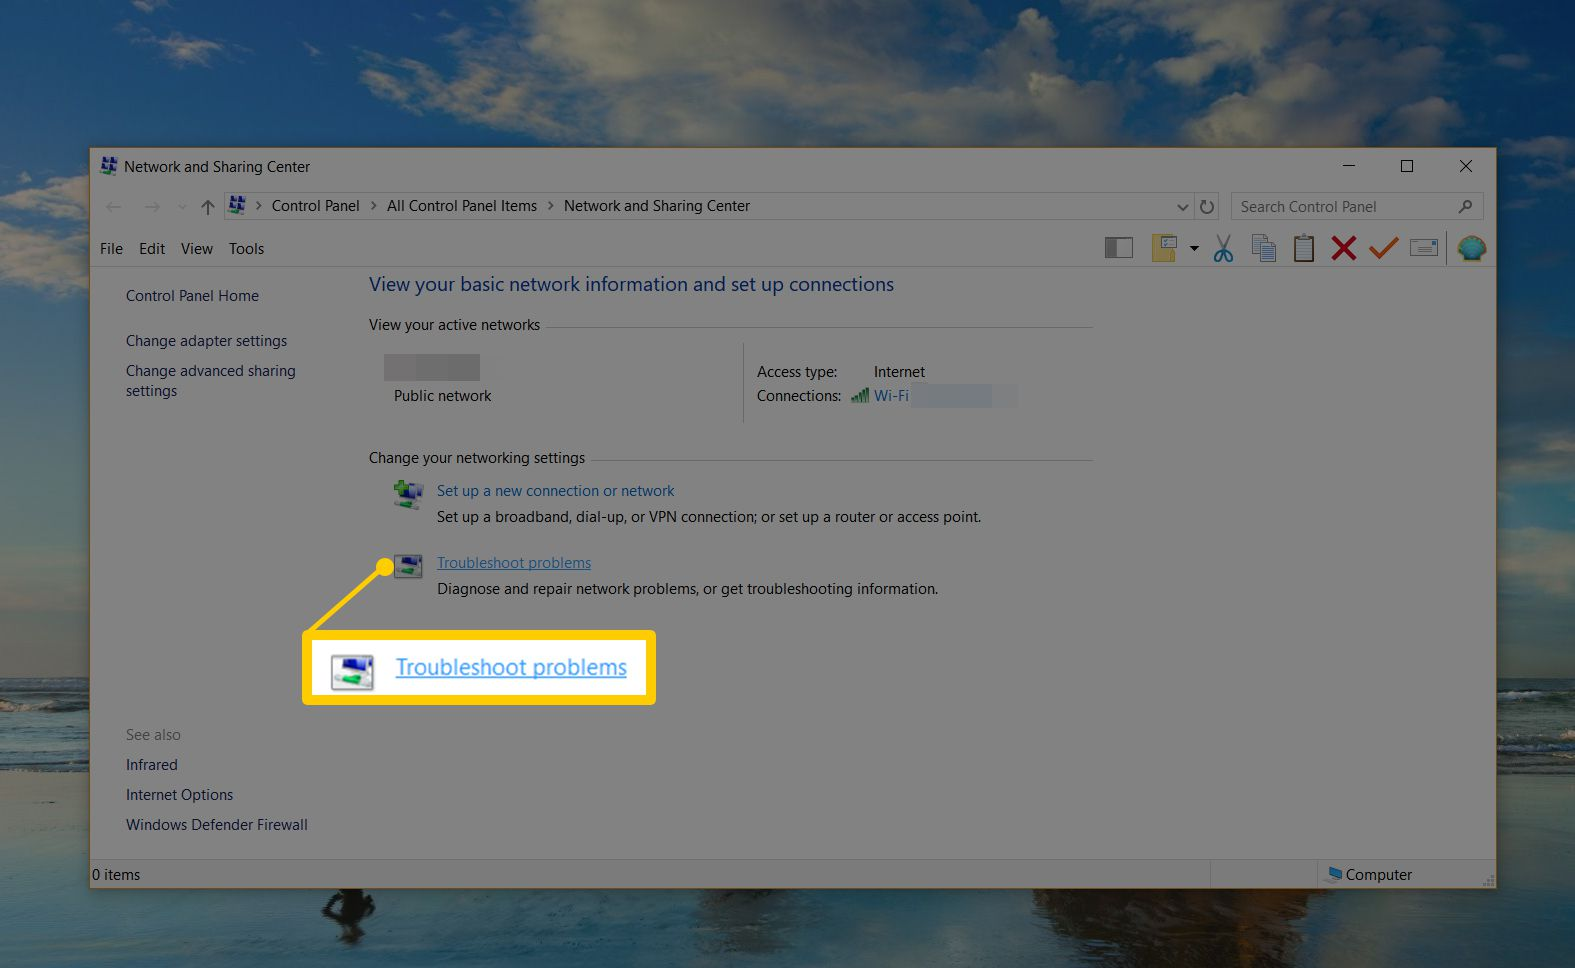 Solve Dns Server Not Responding Errors On Your Network Broadband Internet Connection Sharing Diagram Troubleshoot Problems Window In Networkd And Center For Windows 10